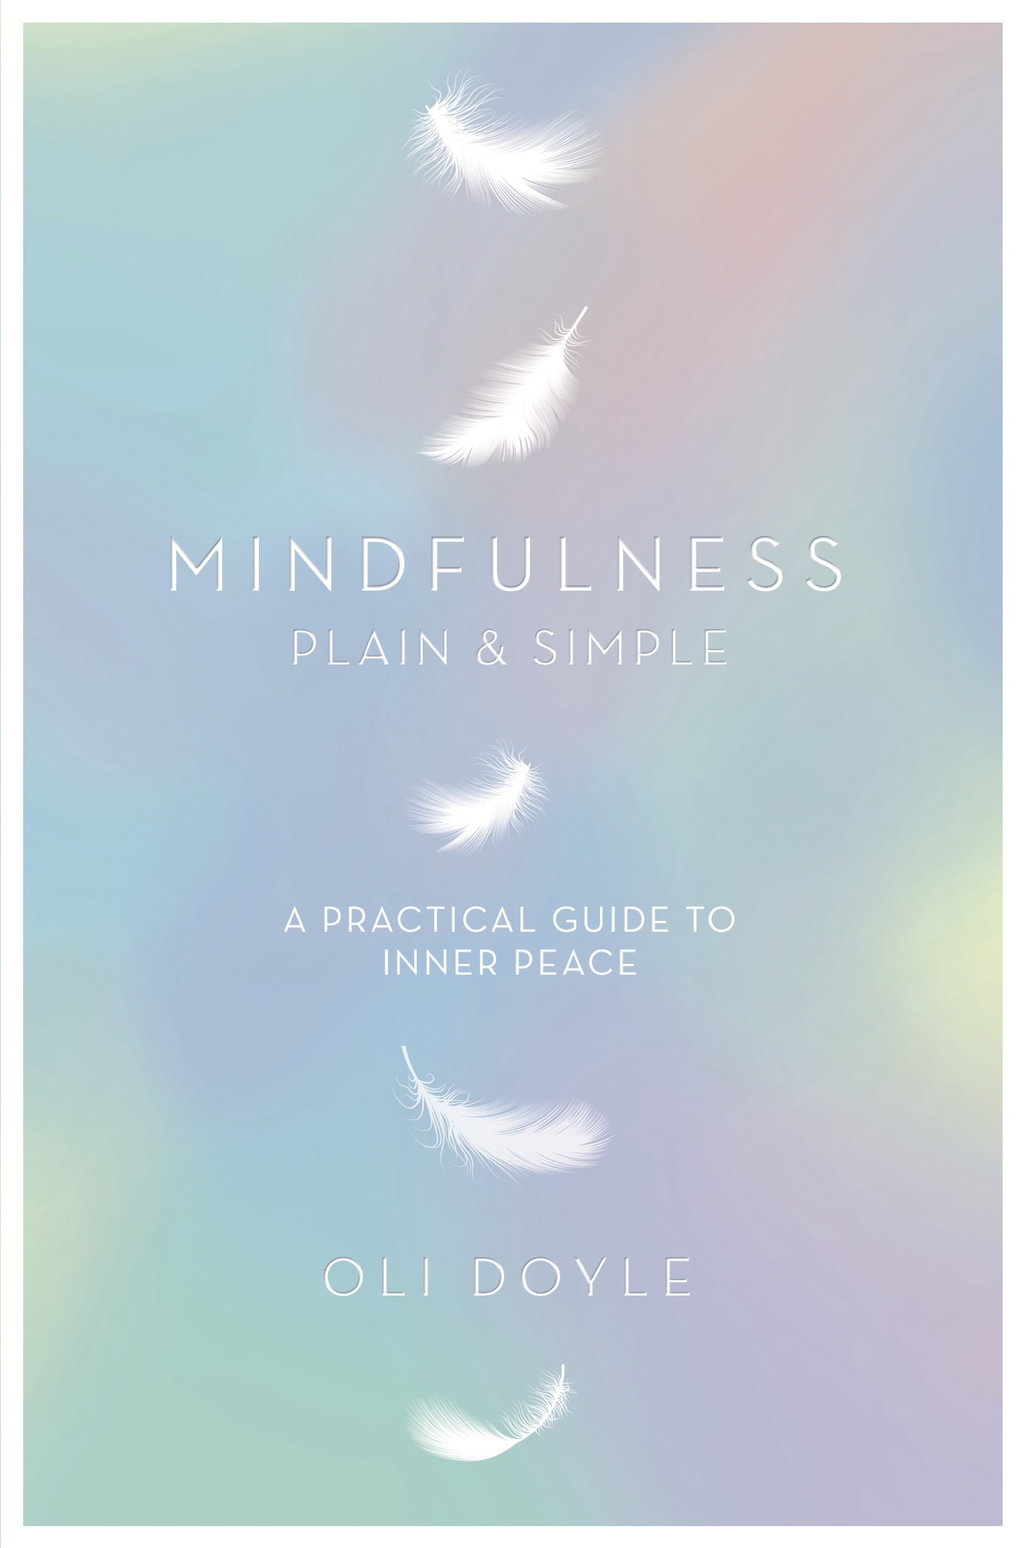 Mindfulness Plain & Simple